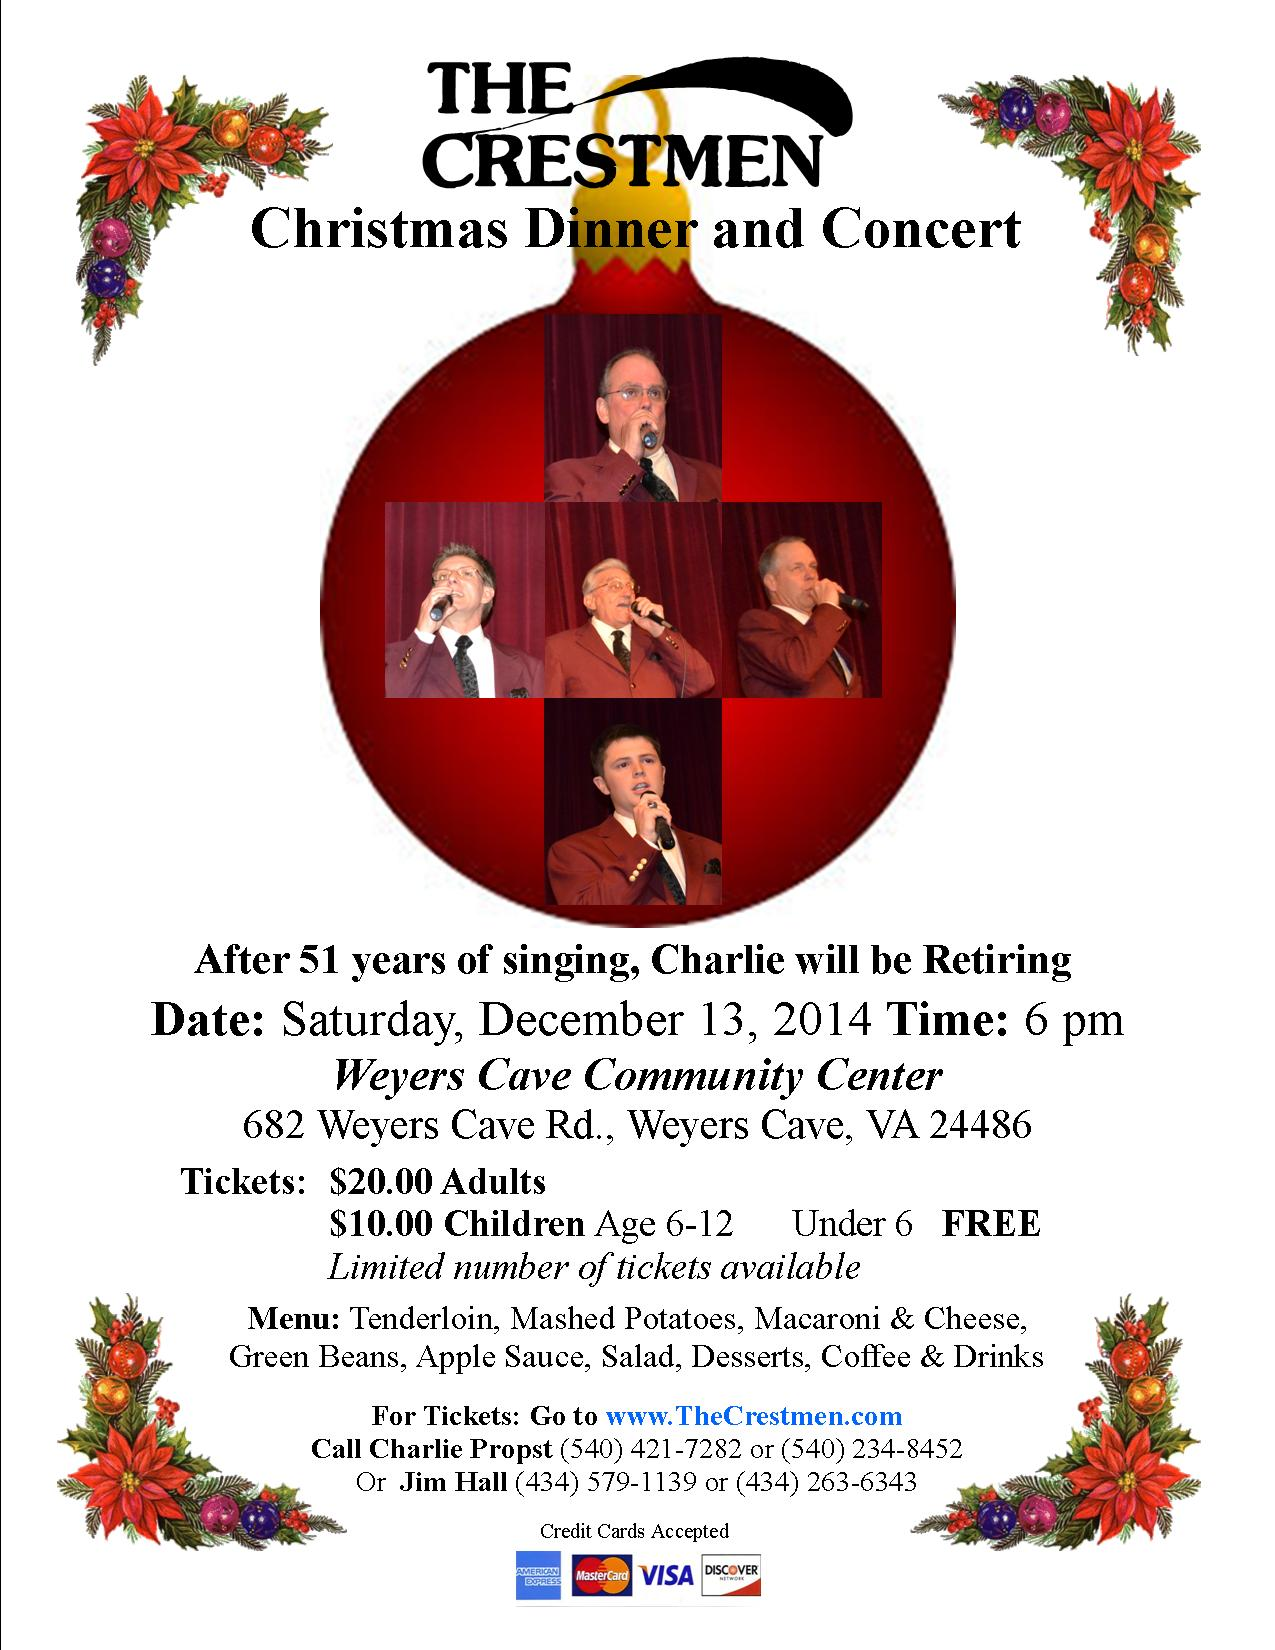 Christmas Dinner and Concert Flyer 2014 1